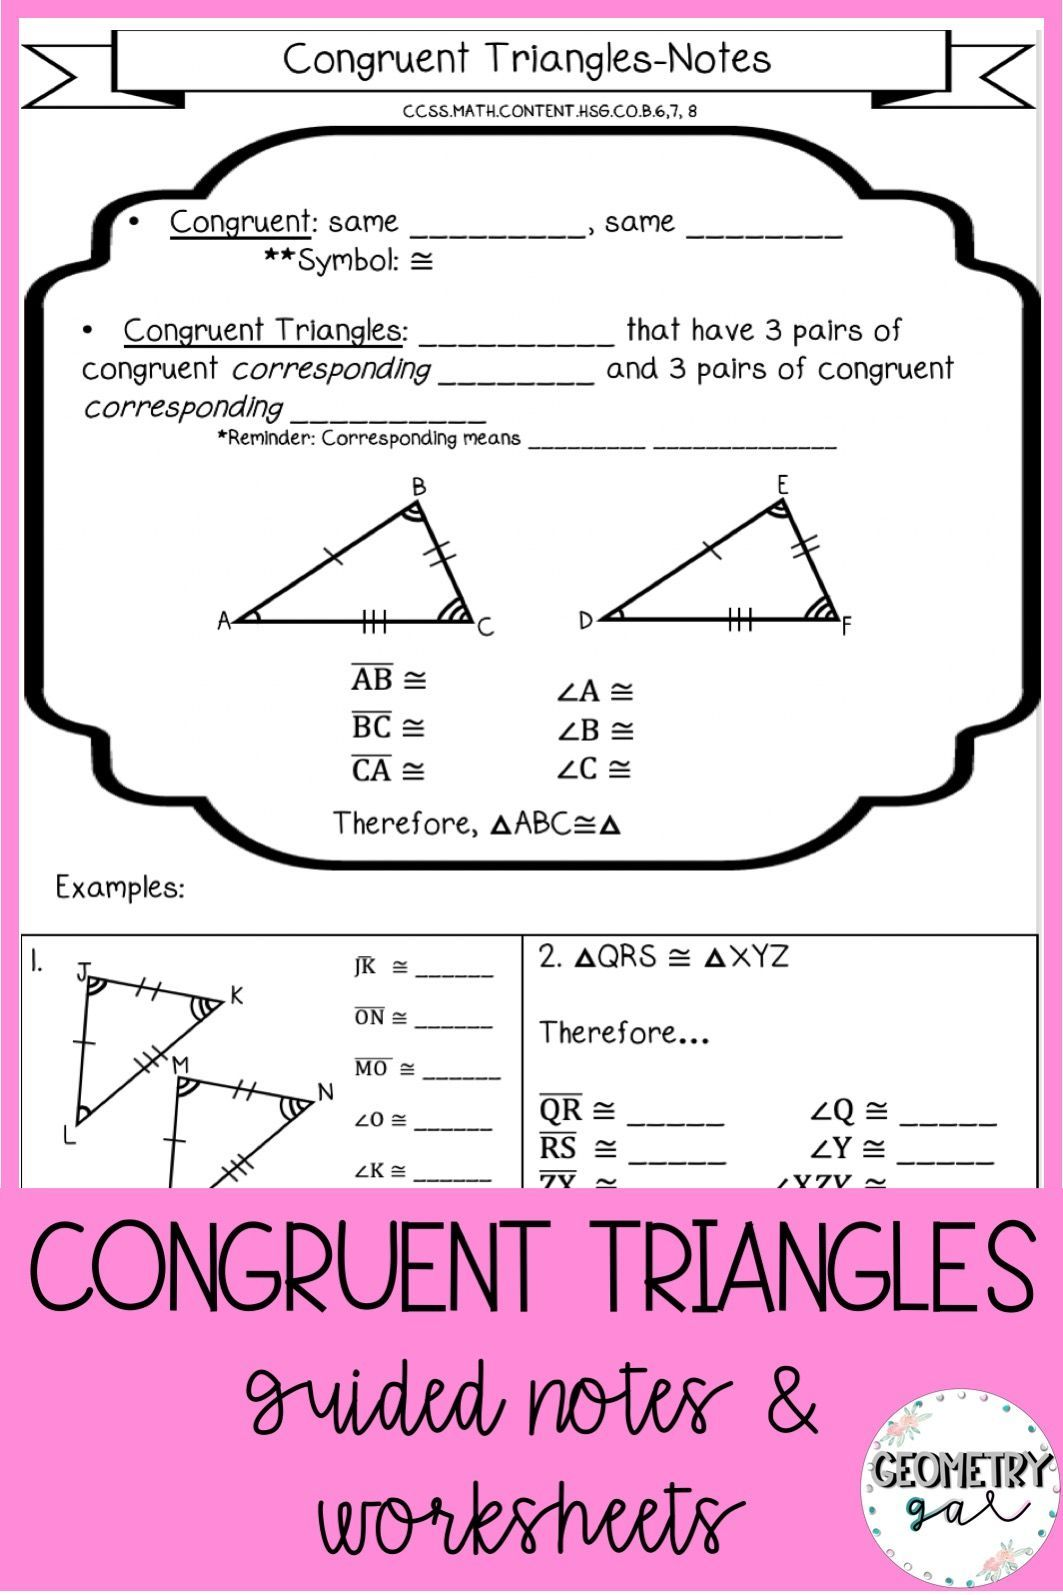 Congruent Triangles Guided Notes And Worksheets No Prep Just Print And Go All Answer Key Triangle Worksheet Congruent Triangles Worksheet Algebra Worksheets